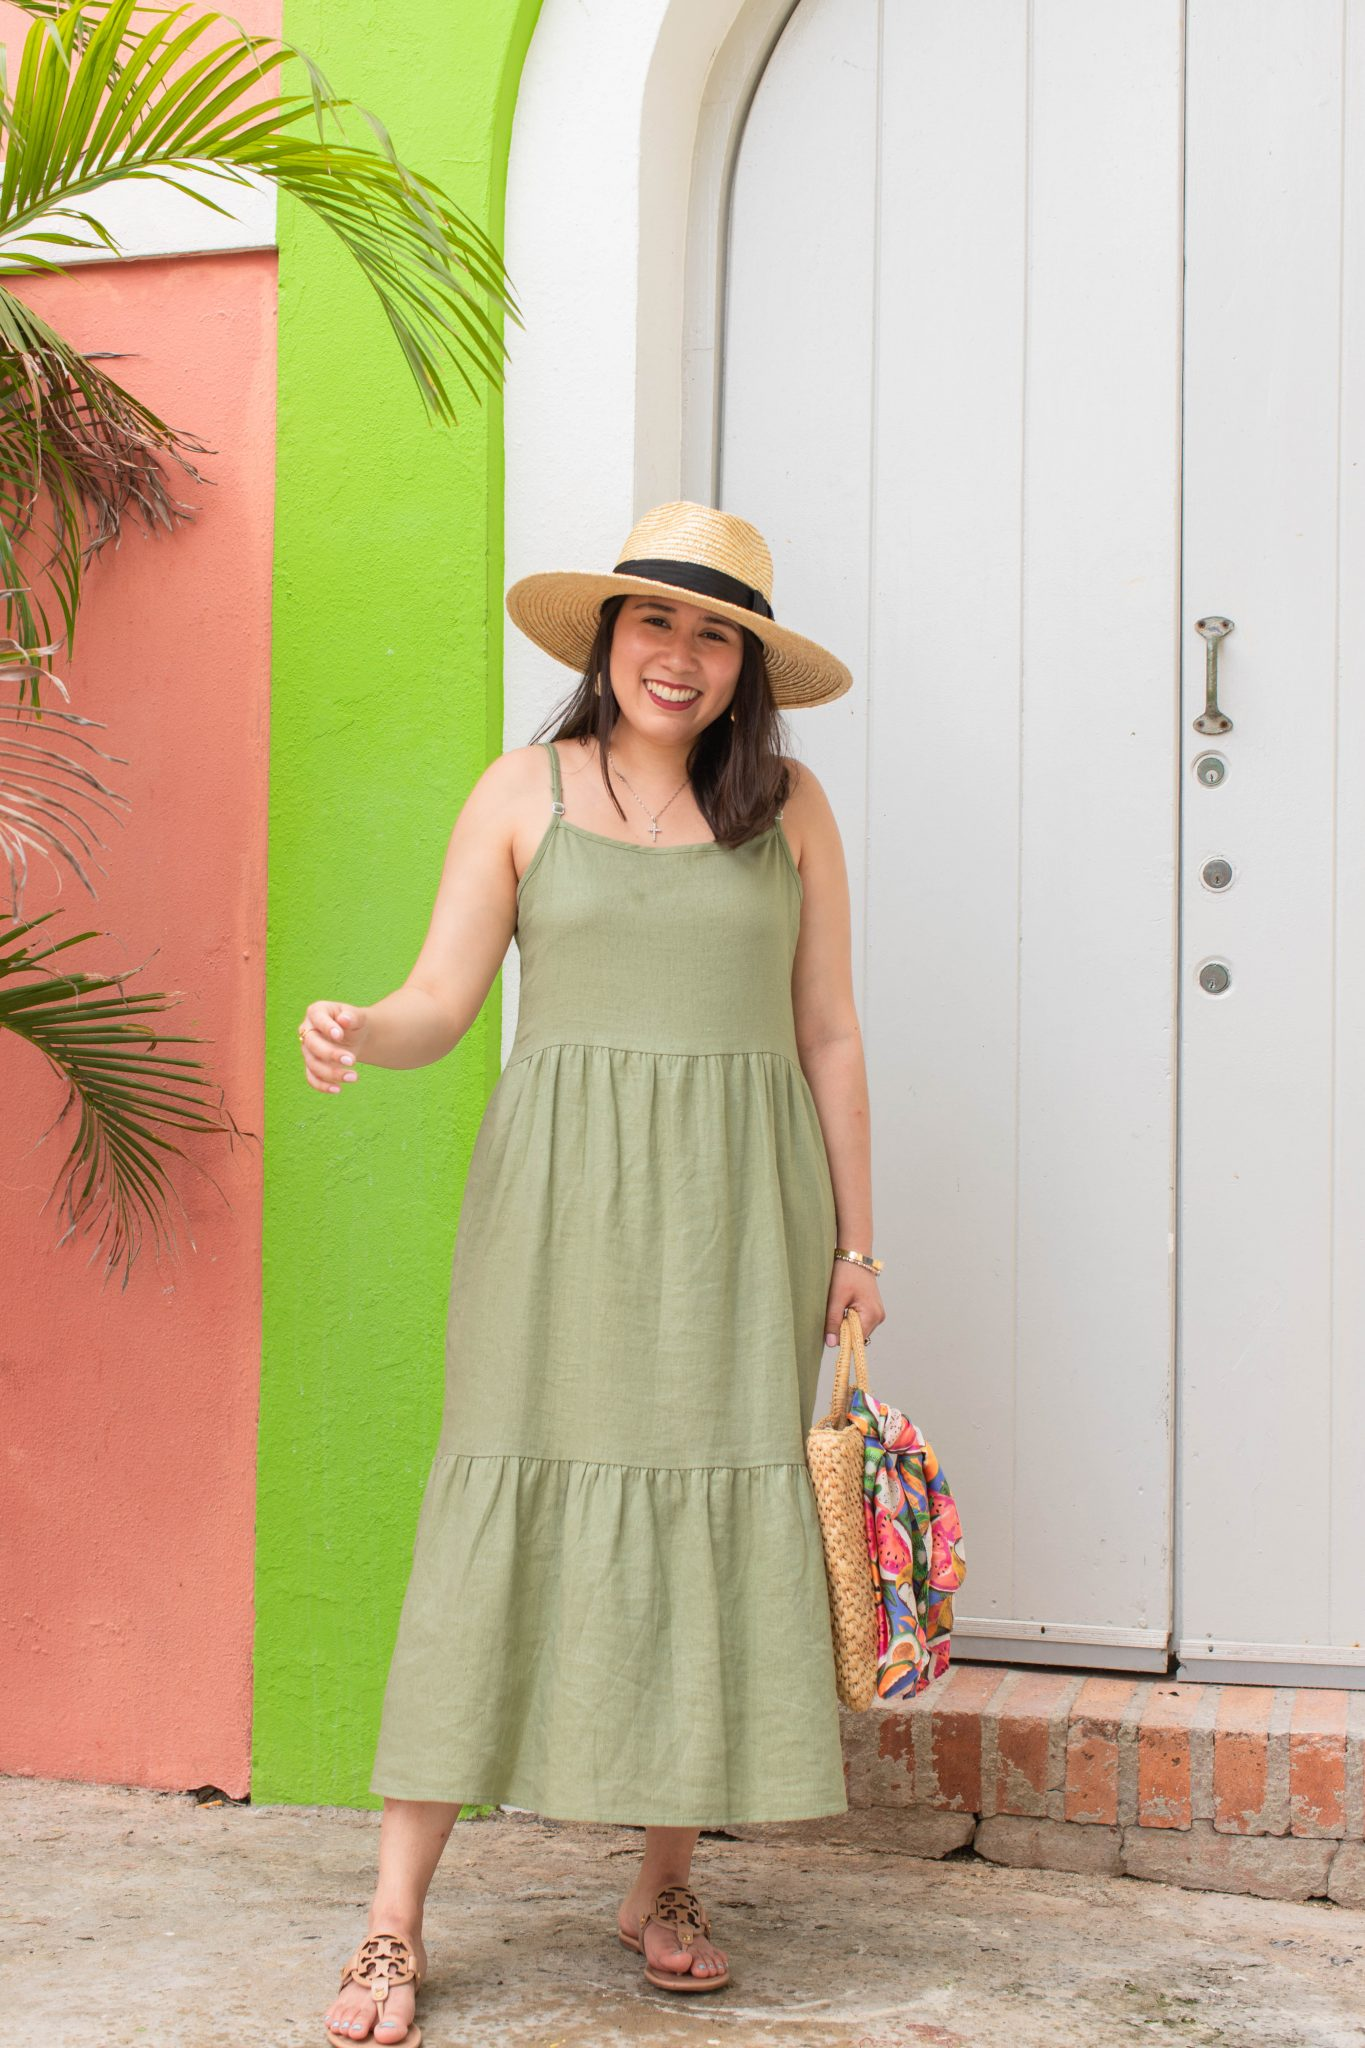 5 Essential Tips To Create Original Content And Grow Your Brand by popular New York influencer blog, Life Laugh Linda: image of a woman standing outside in front of pink and neon green building wearing a green maxi dress, brown sandals, straw sunhat, and holding a straw bag with a scarf tied on one of the handles.